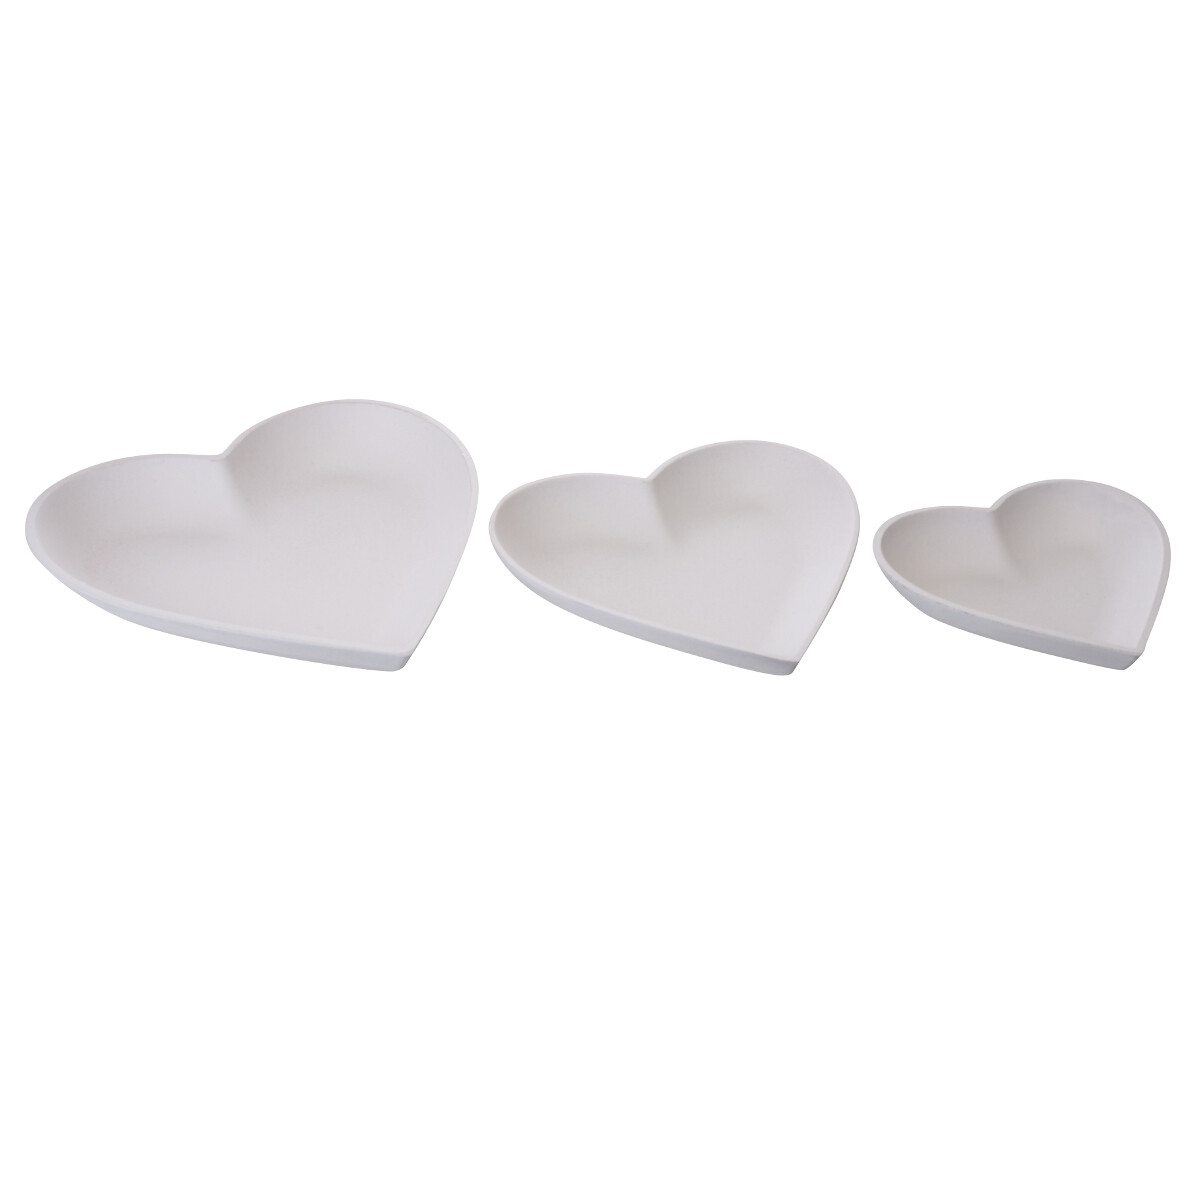 TABLE BOWLS IN HEART SHAPE SET OF 3